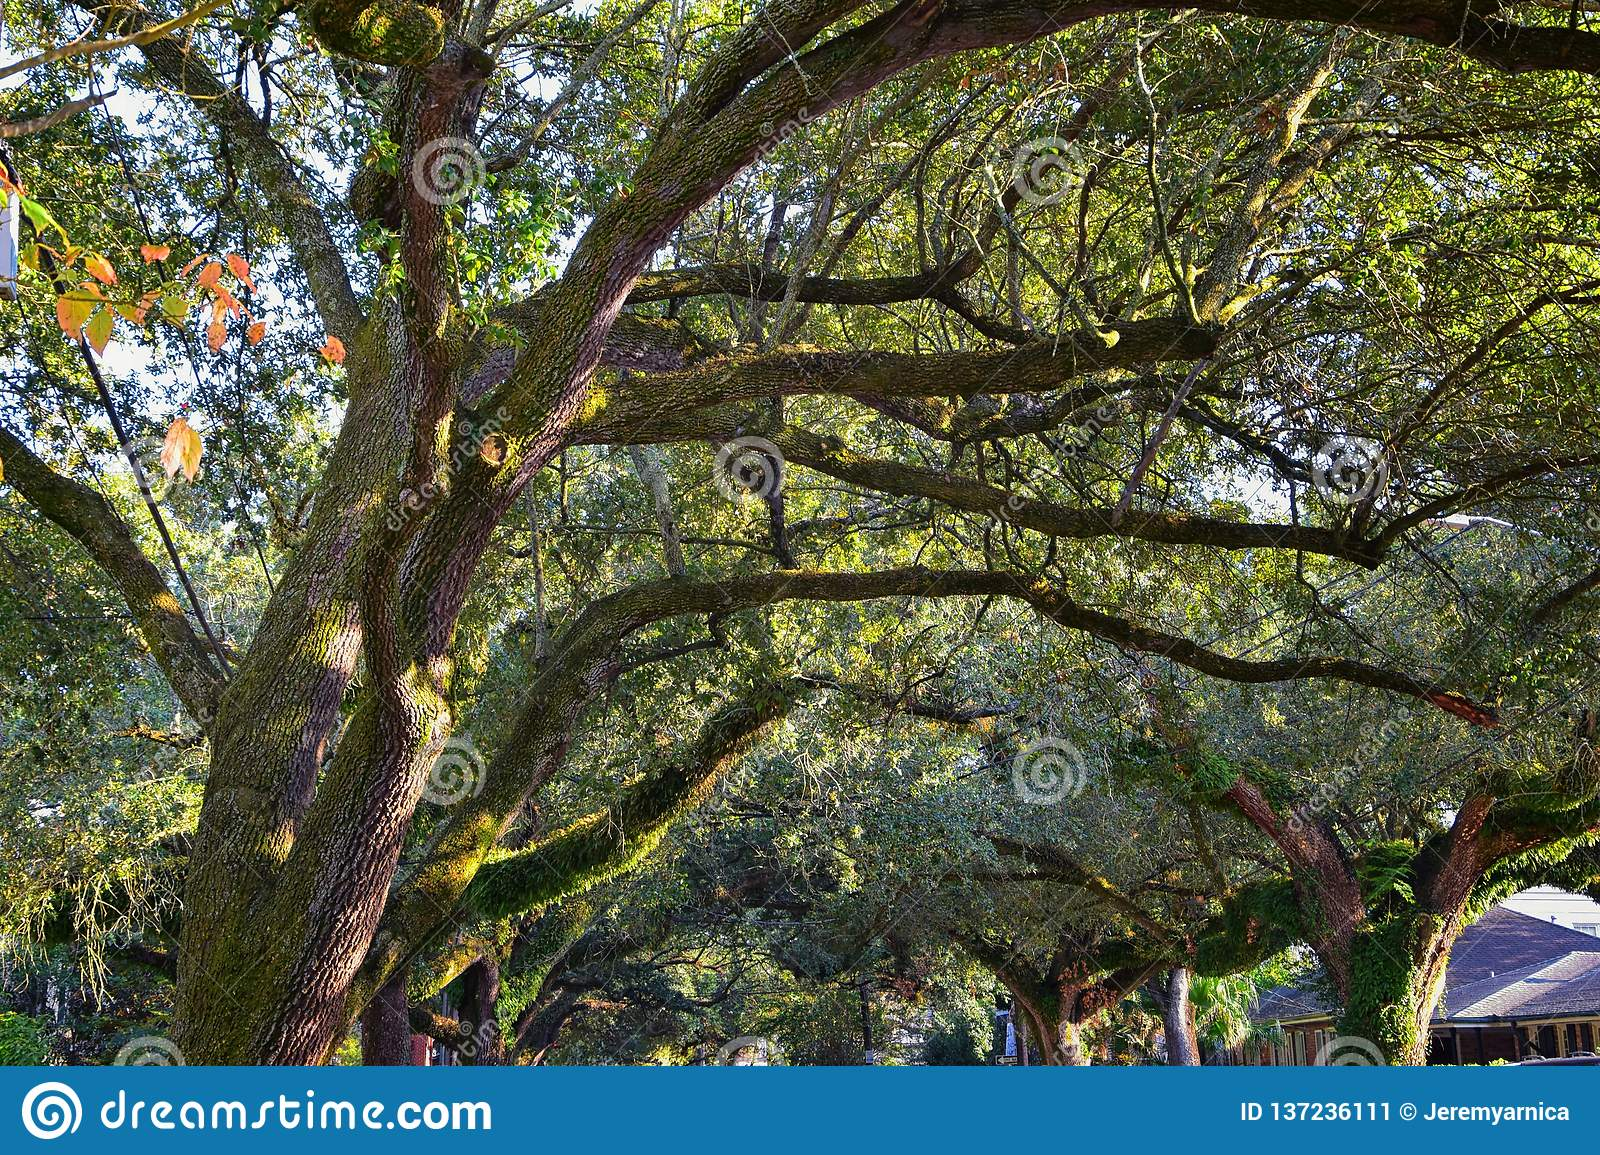 Views of trees and unique nature aspects surrounding New Orleans, including reflecting pools in cemeteries and the Garden District